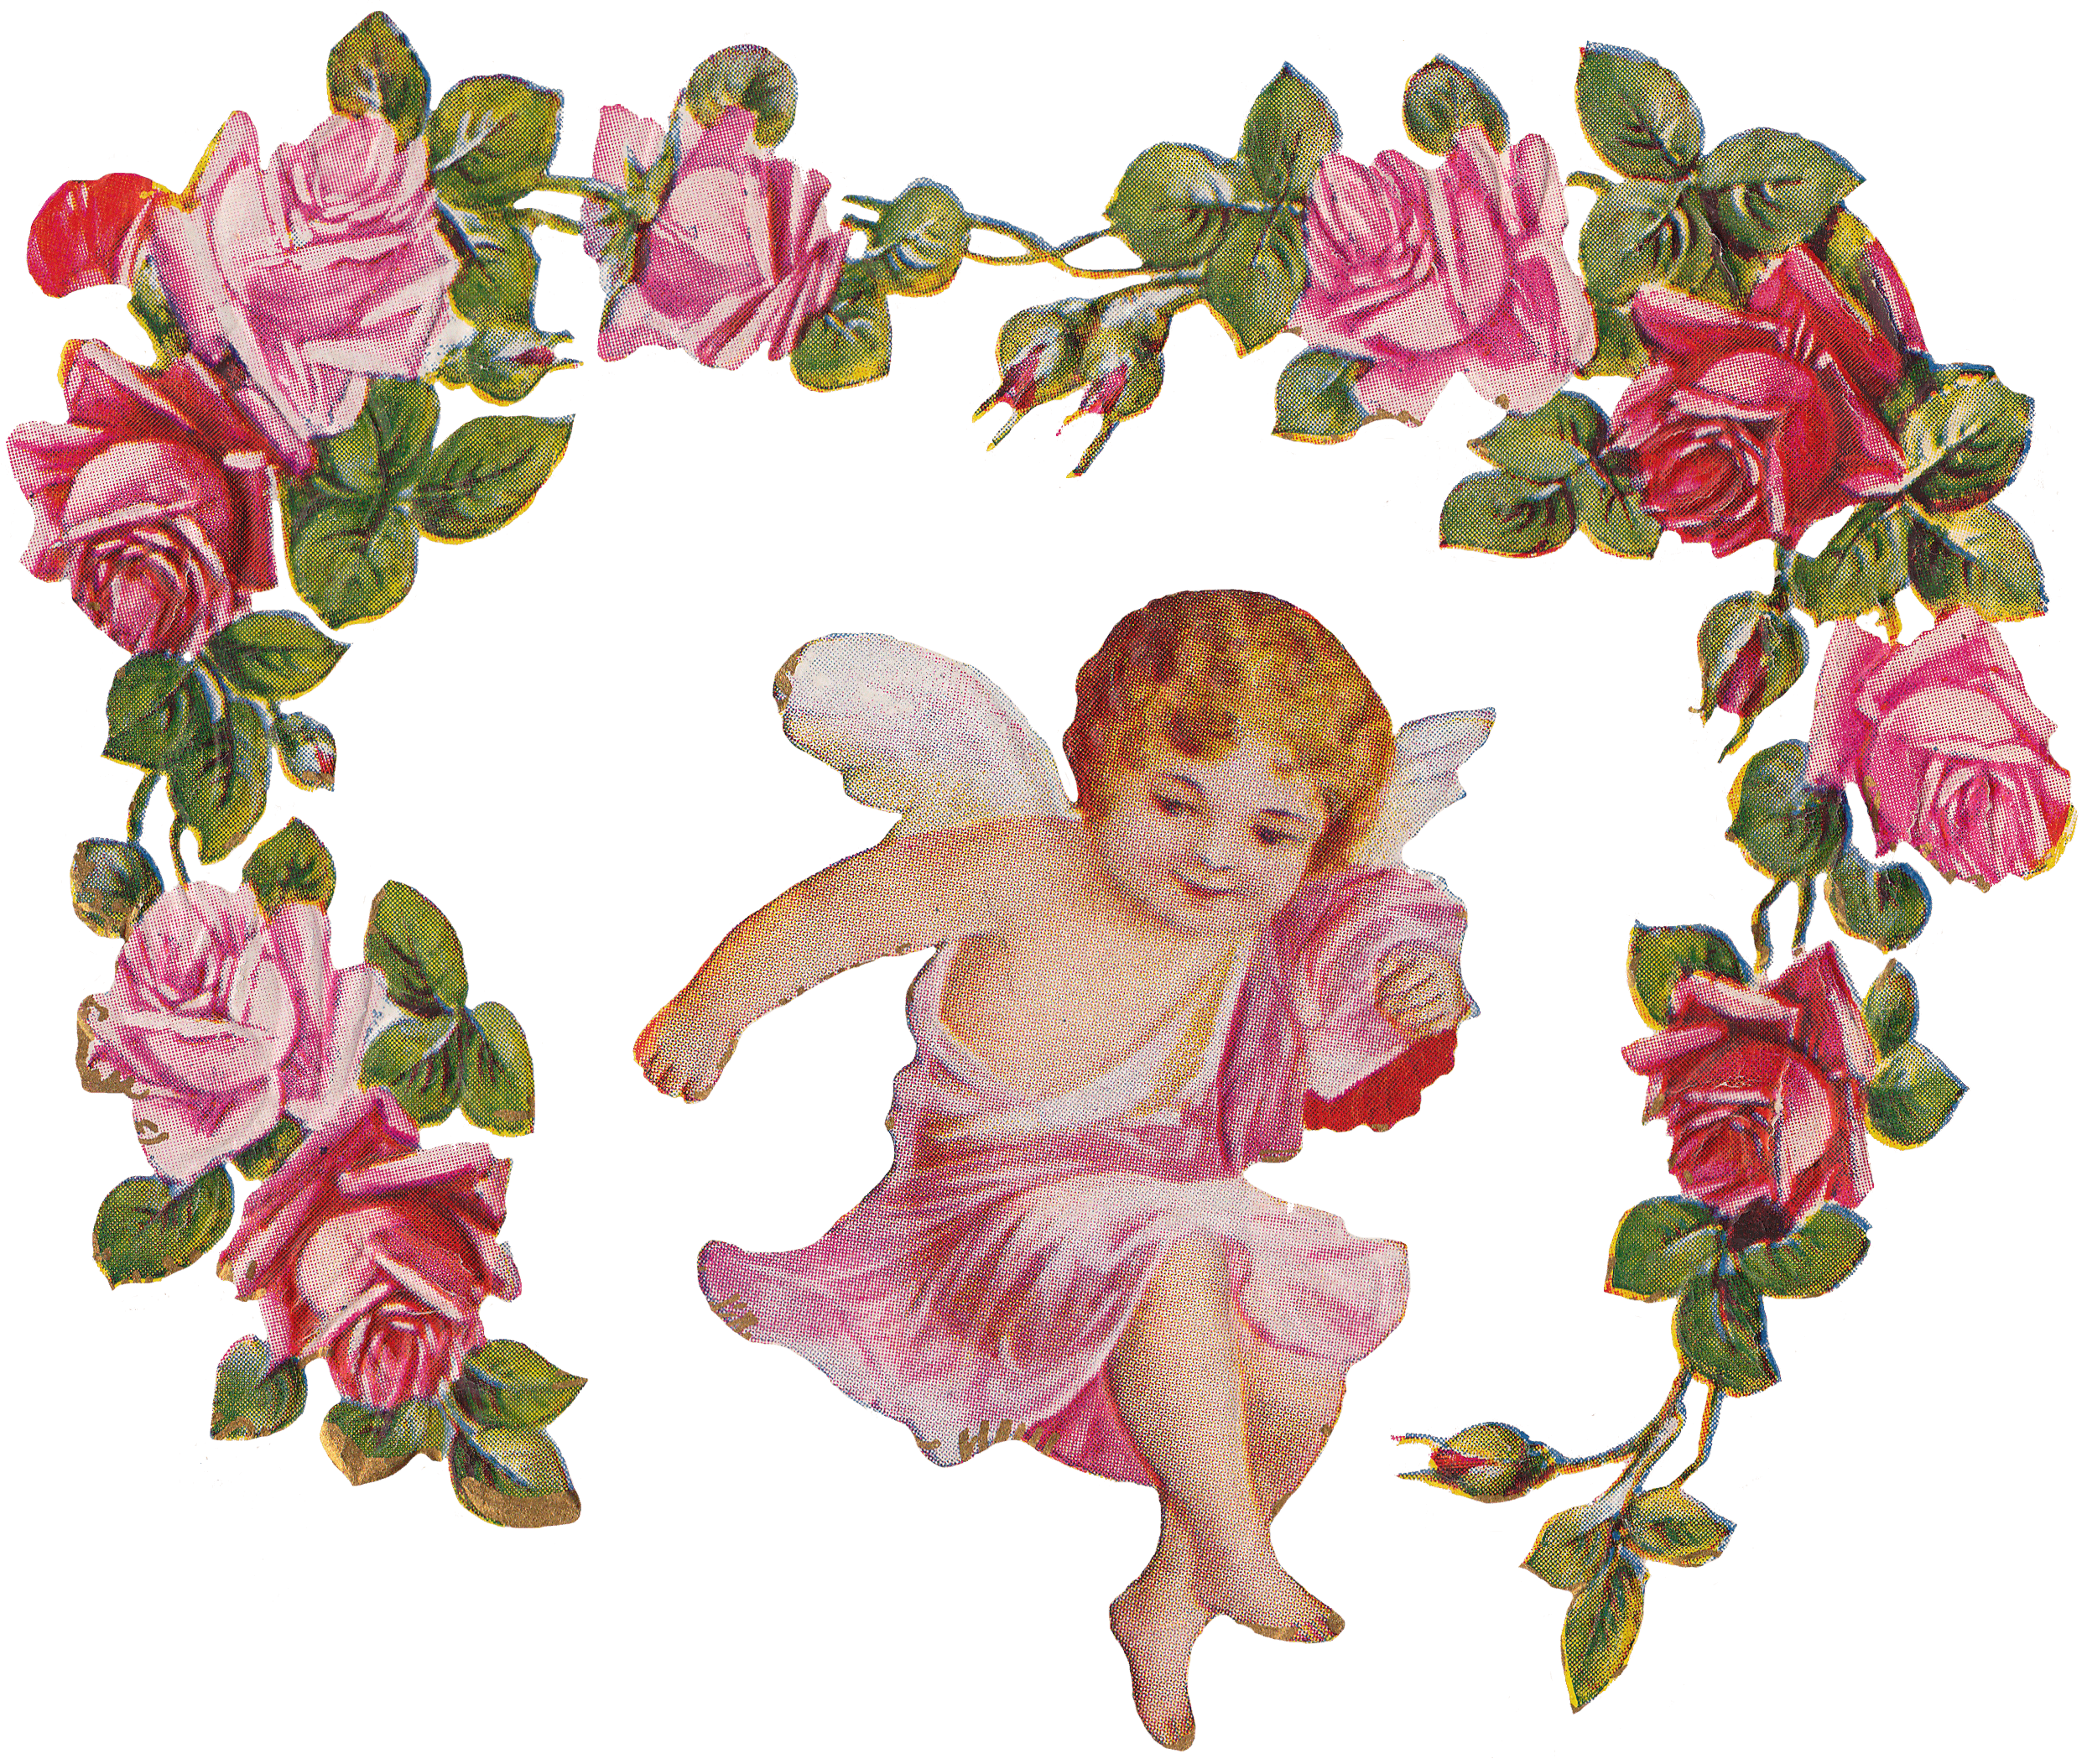 Cross with roses clipart black and white download Cherub Angel Roses Vintage transparent PNG - StickPNG black and white download